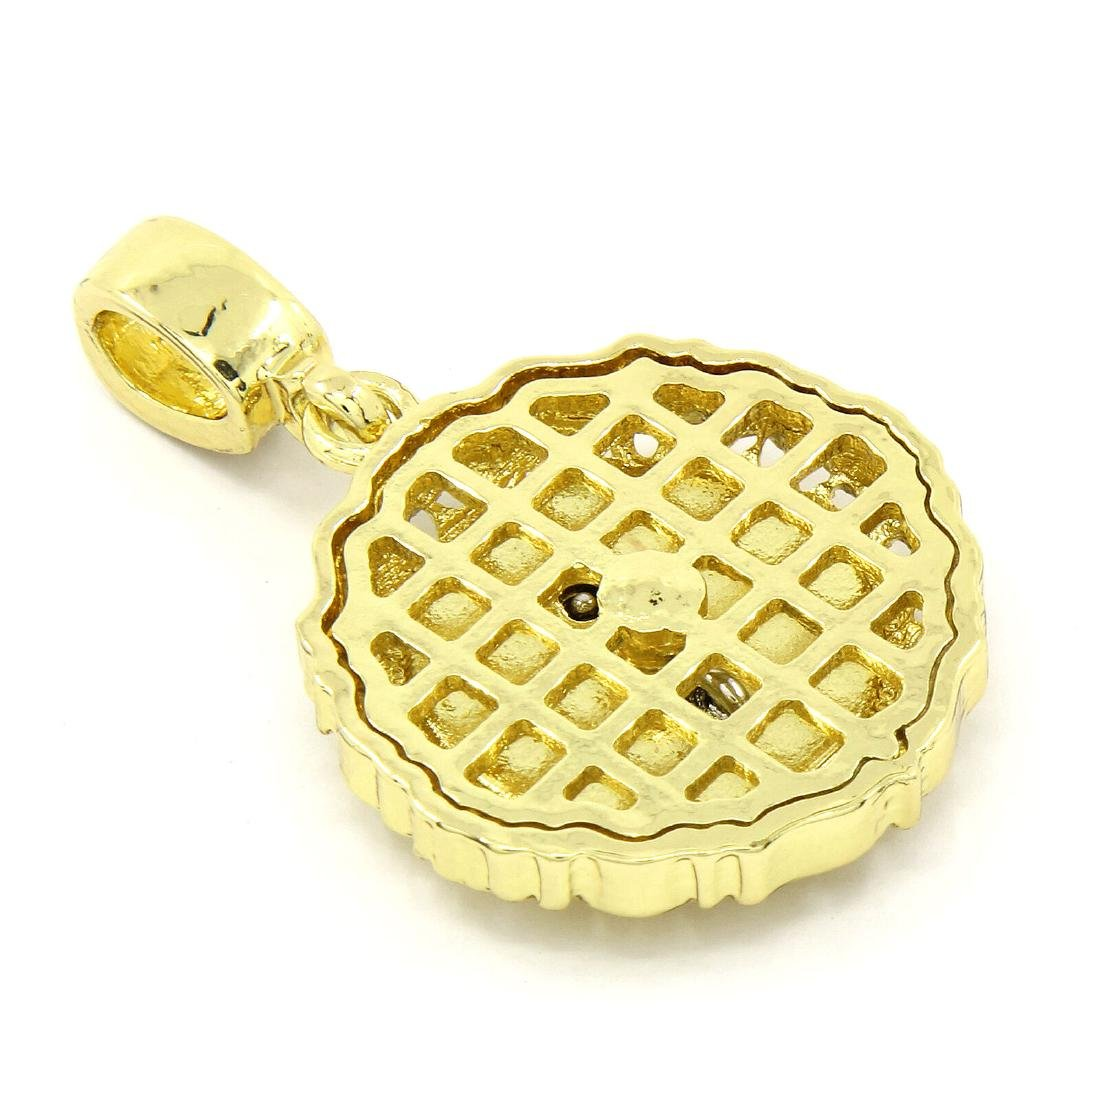 Mens 14K Gold Plated 50 Cent Peso Pendant. - 2